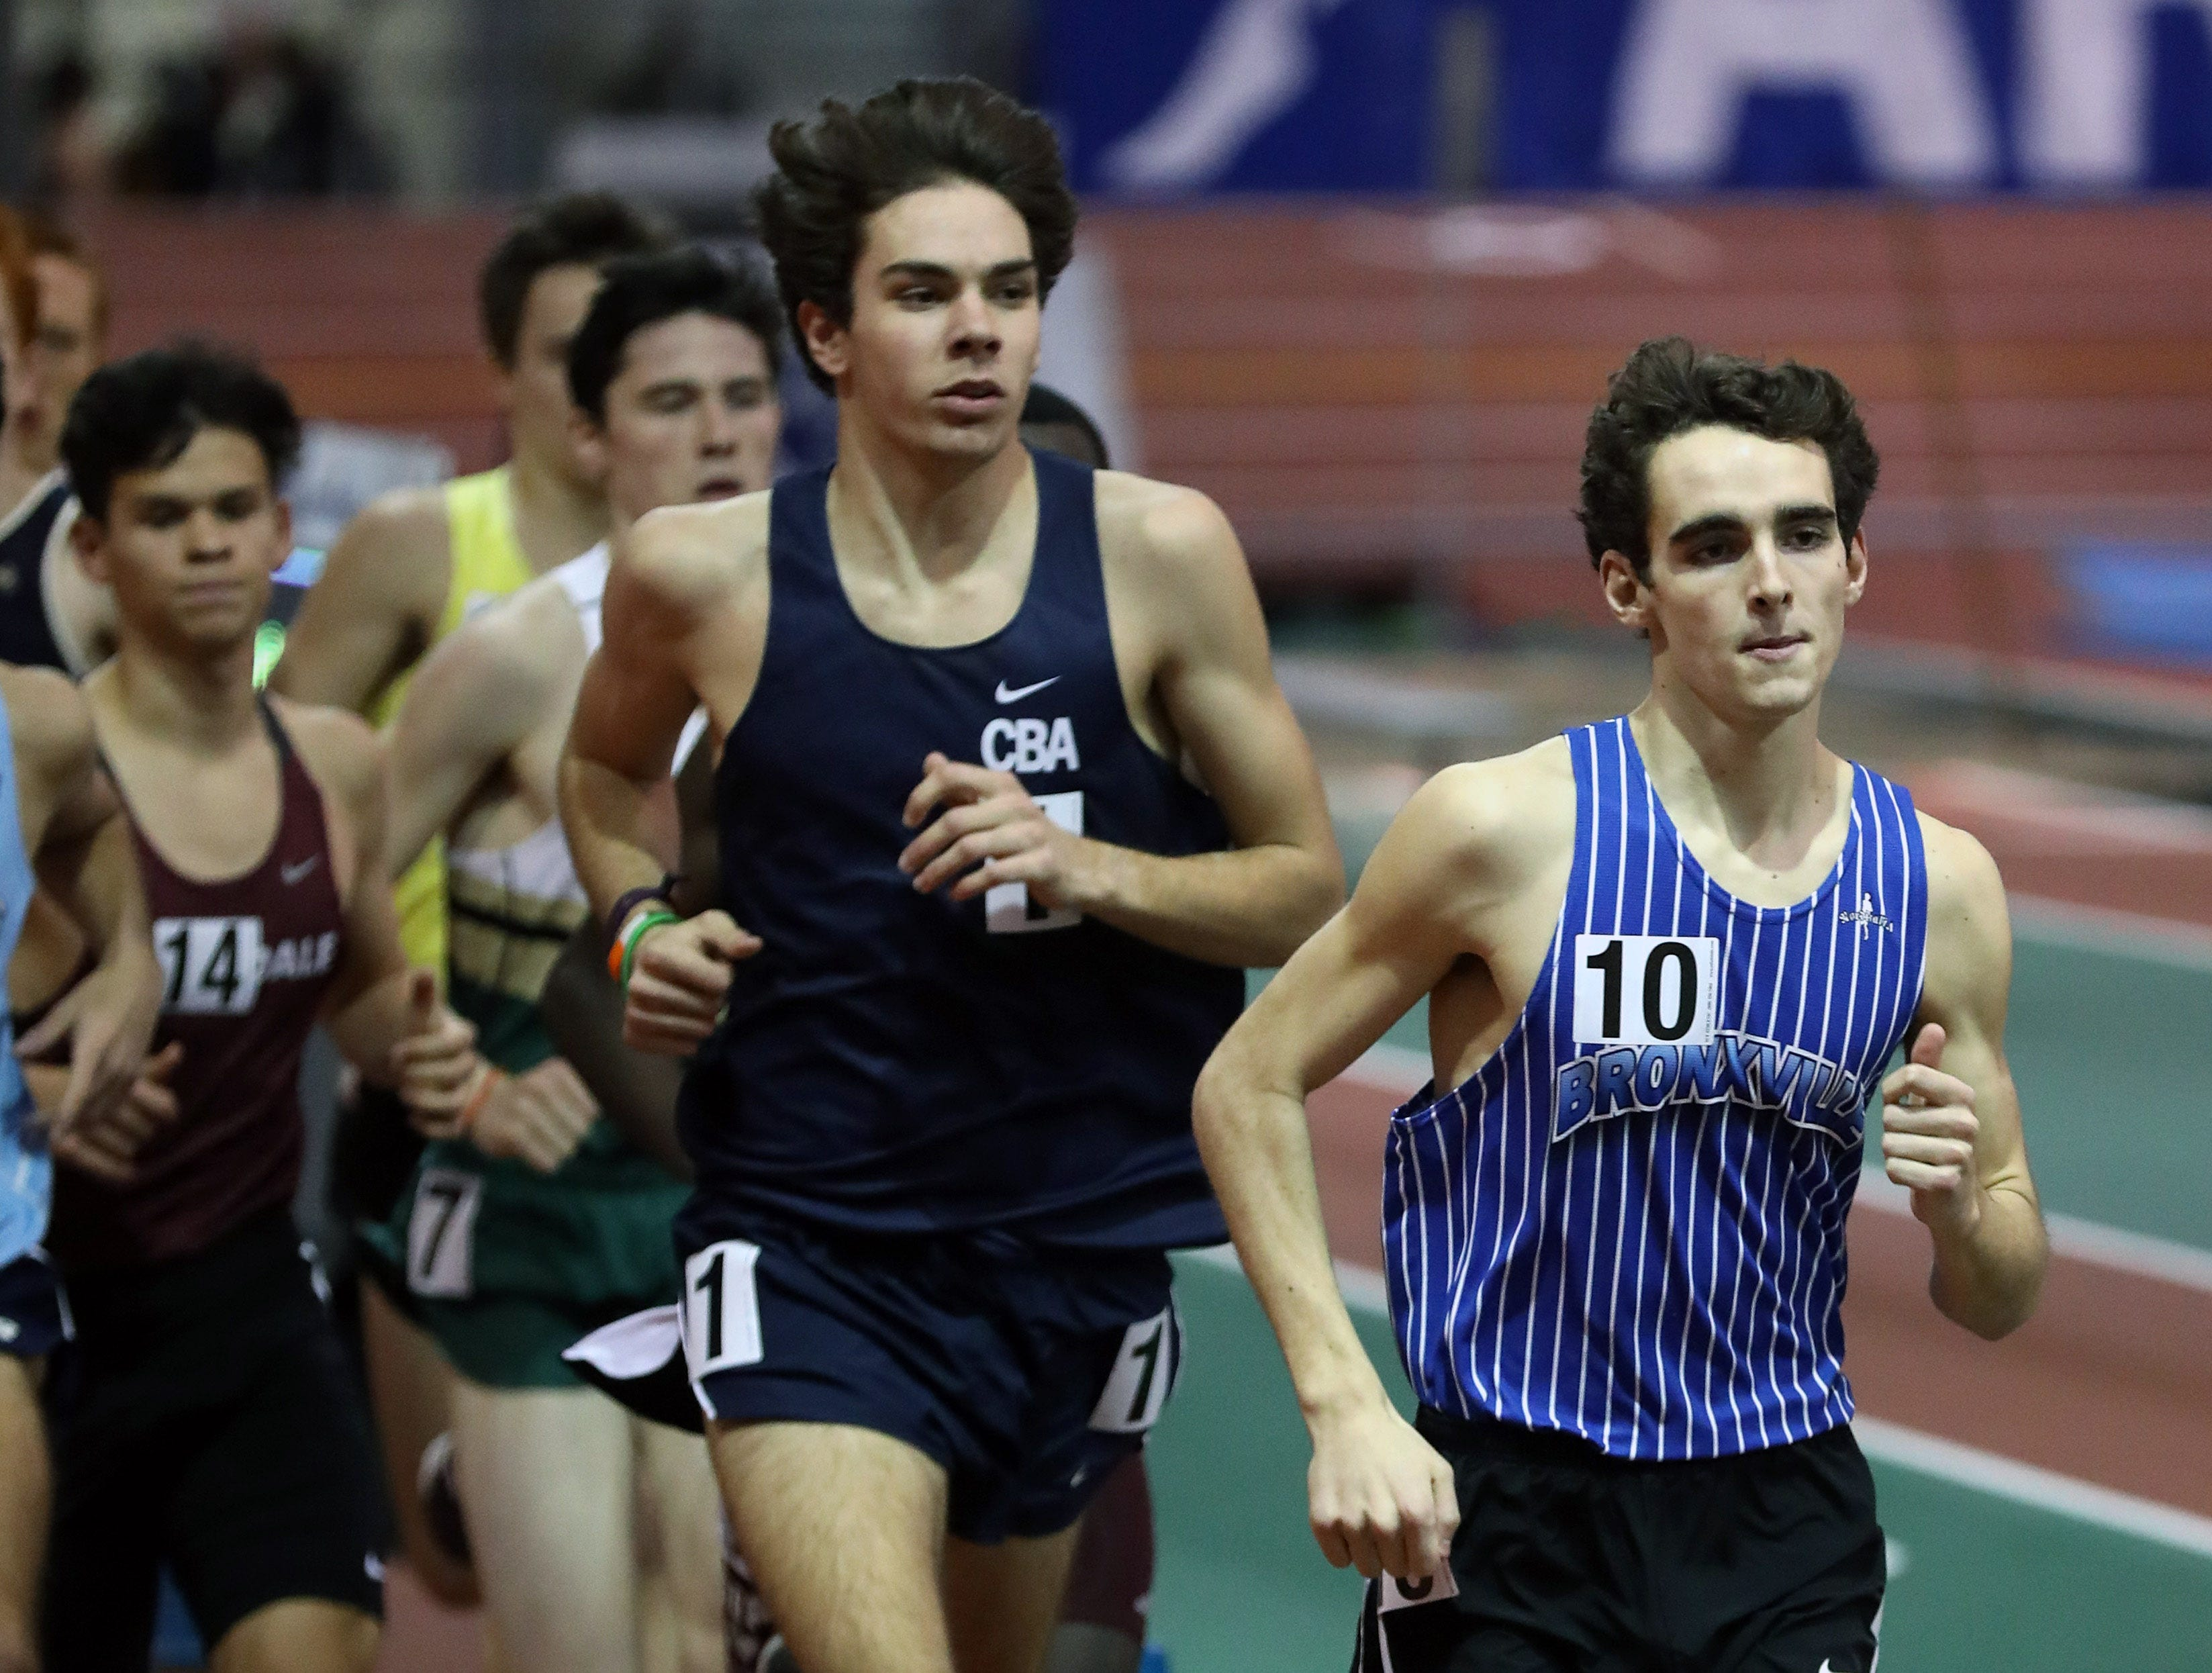 Bronxville's Matt Rizzo competes in the Boys invitational mile during the Millrose Games Trials at the Armory in Manhattan Jan. 9, 2019.